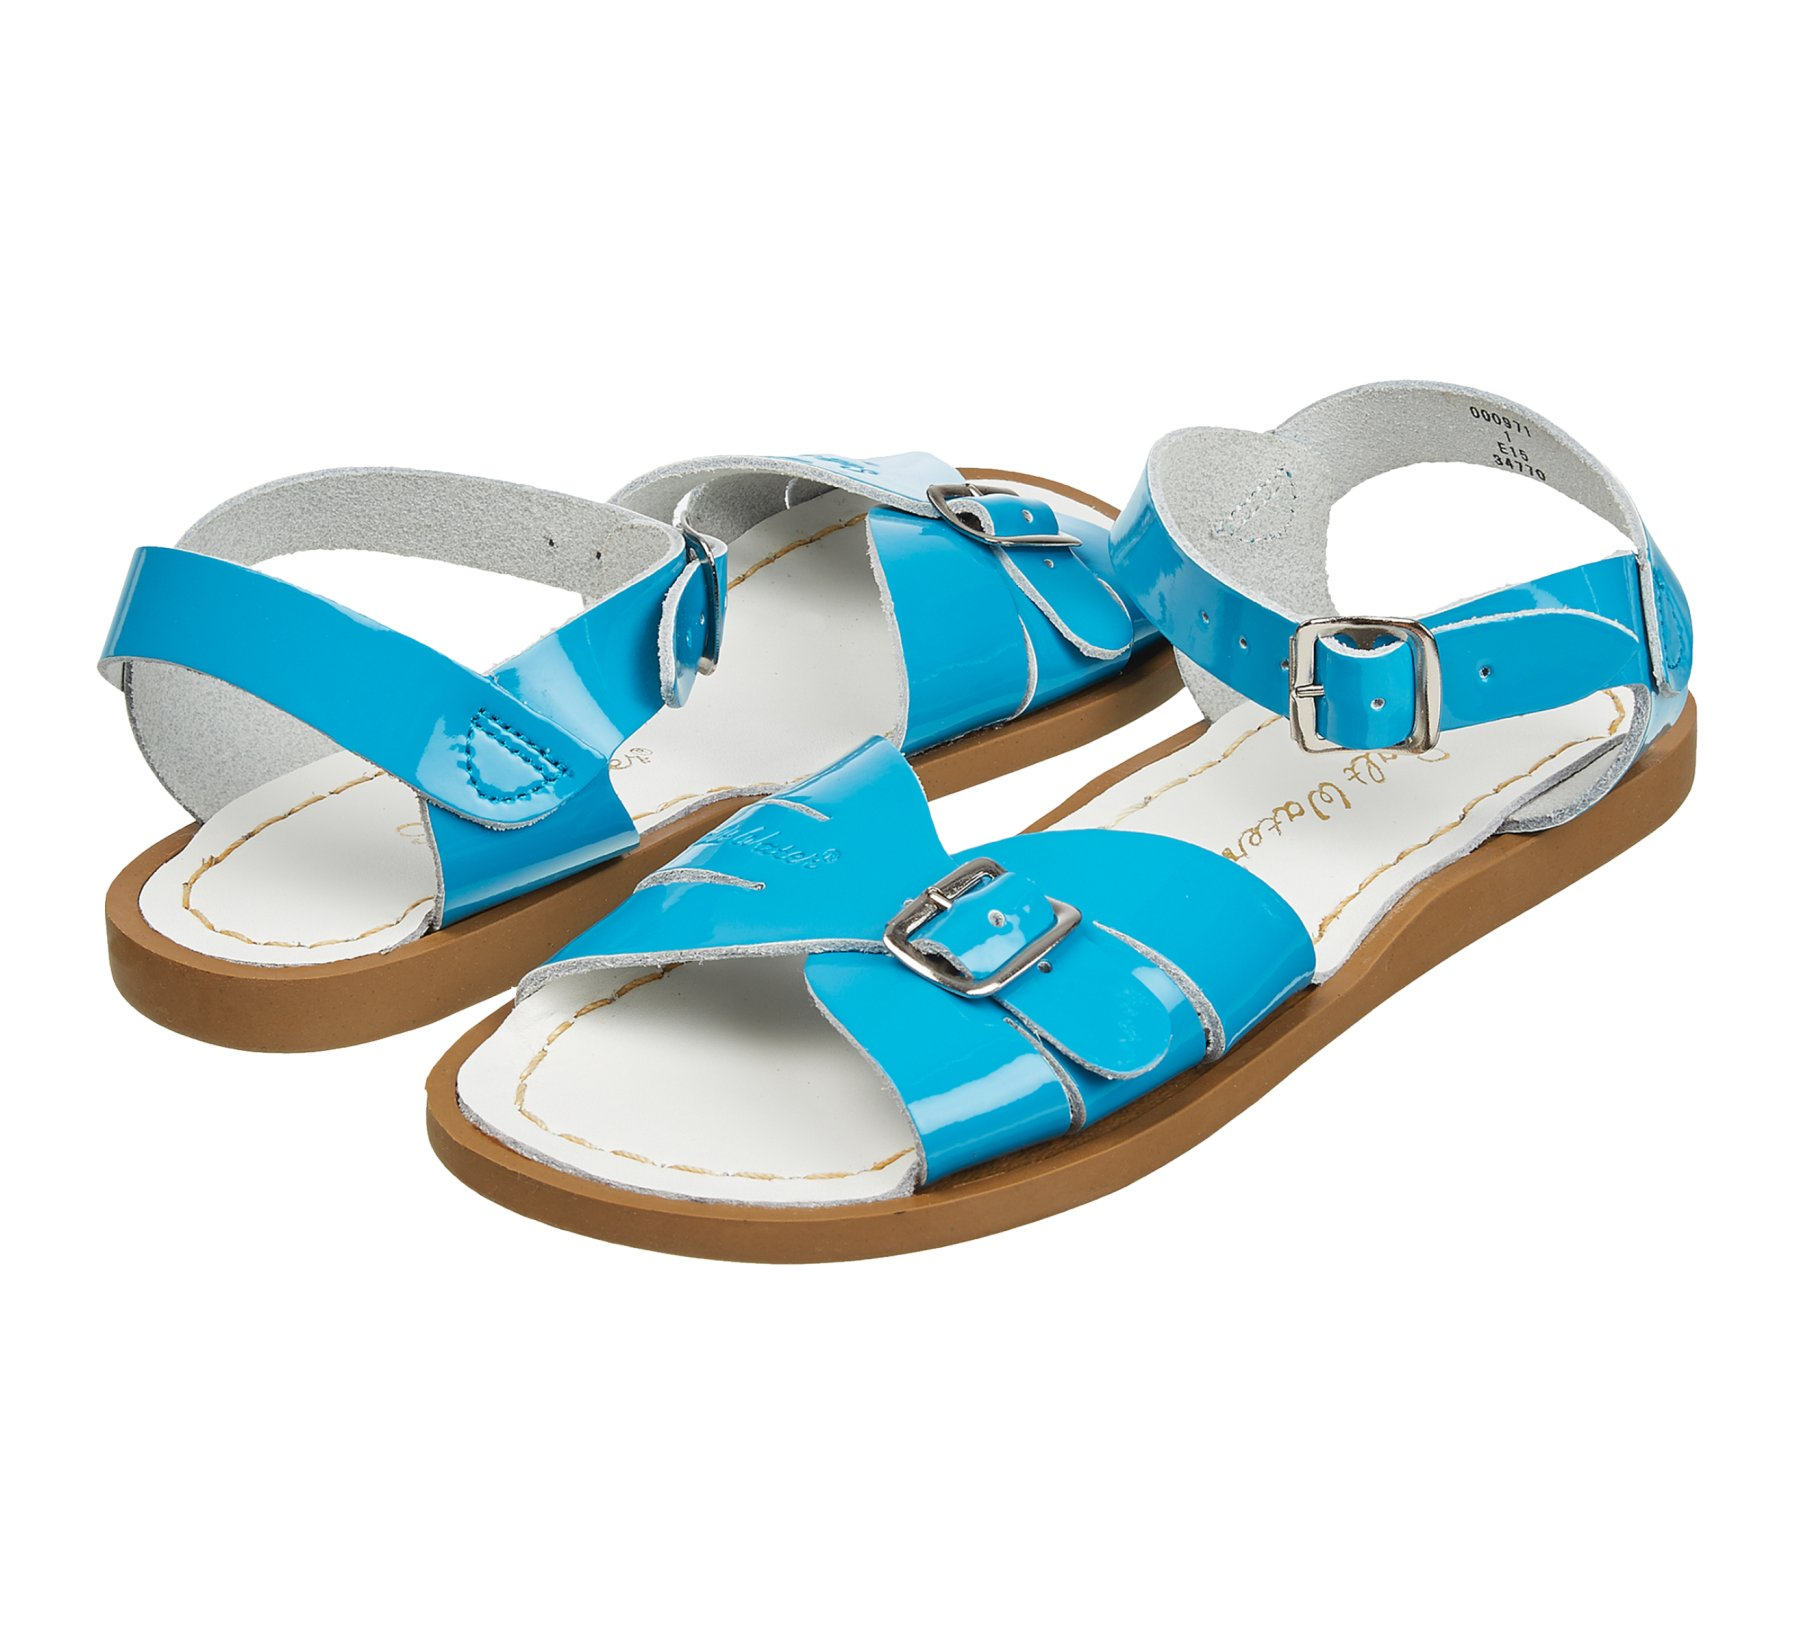 Classic Shiny Turquoise  - Salt Water Sandals